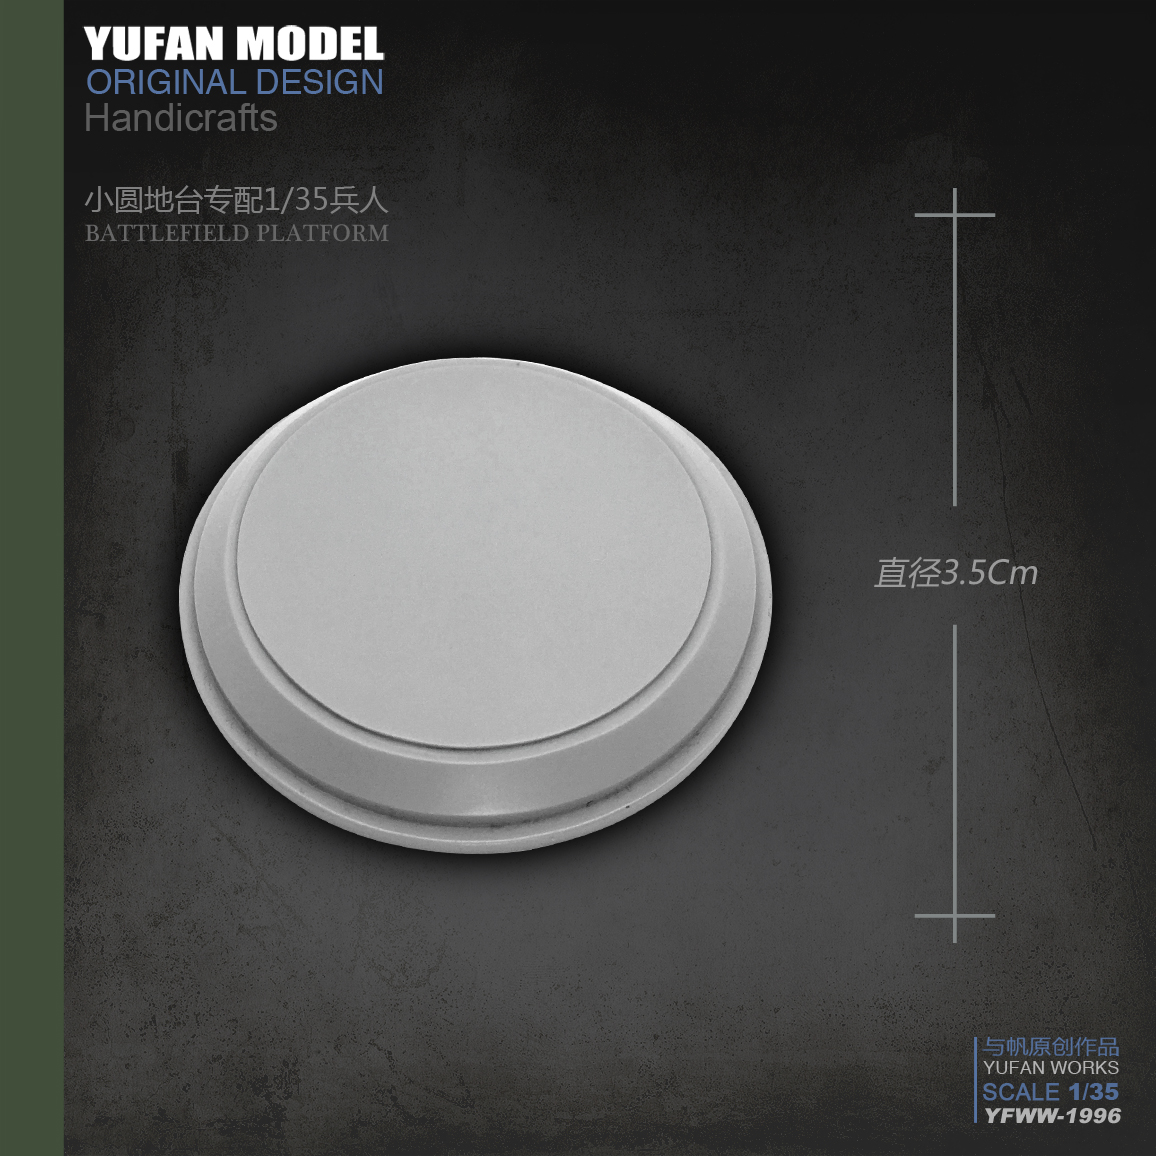 Yufan Model Resin Platform Accessories Created 3.5cm Resin Soldier Platform Model Yfww-1996